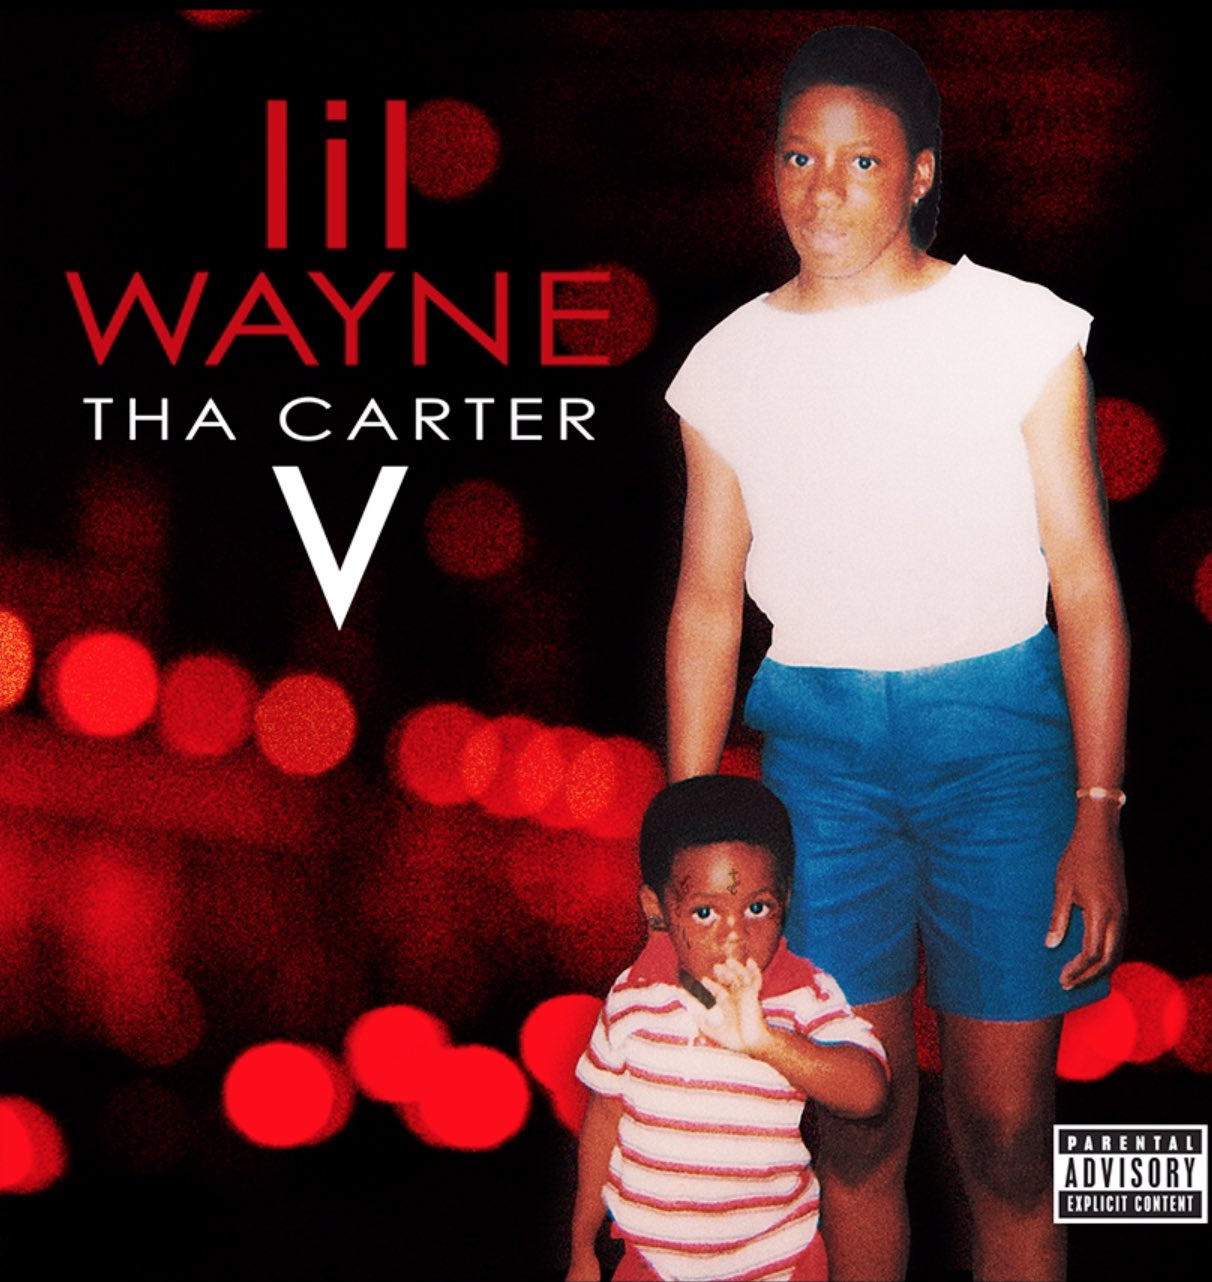 �� Lil Wayne Announces Official 'Tha Carter V' Release Date In Message To Fans: https://t.co/tYGDtdnRJj https://t.co/hJcvtsiVNj